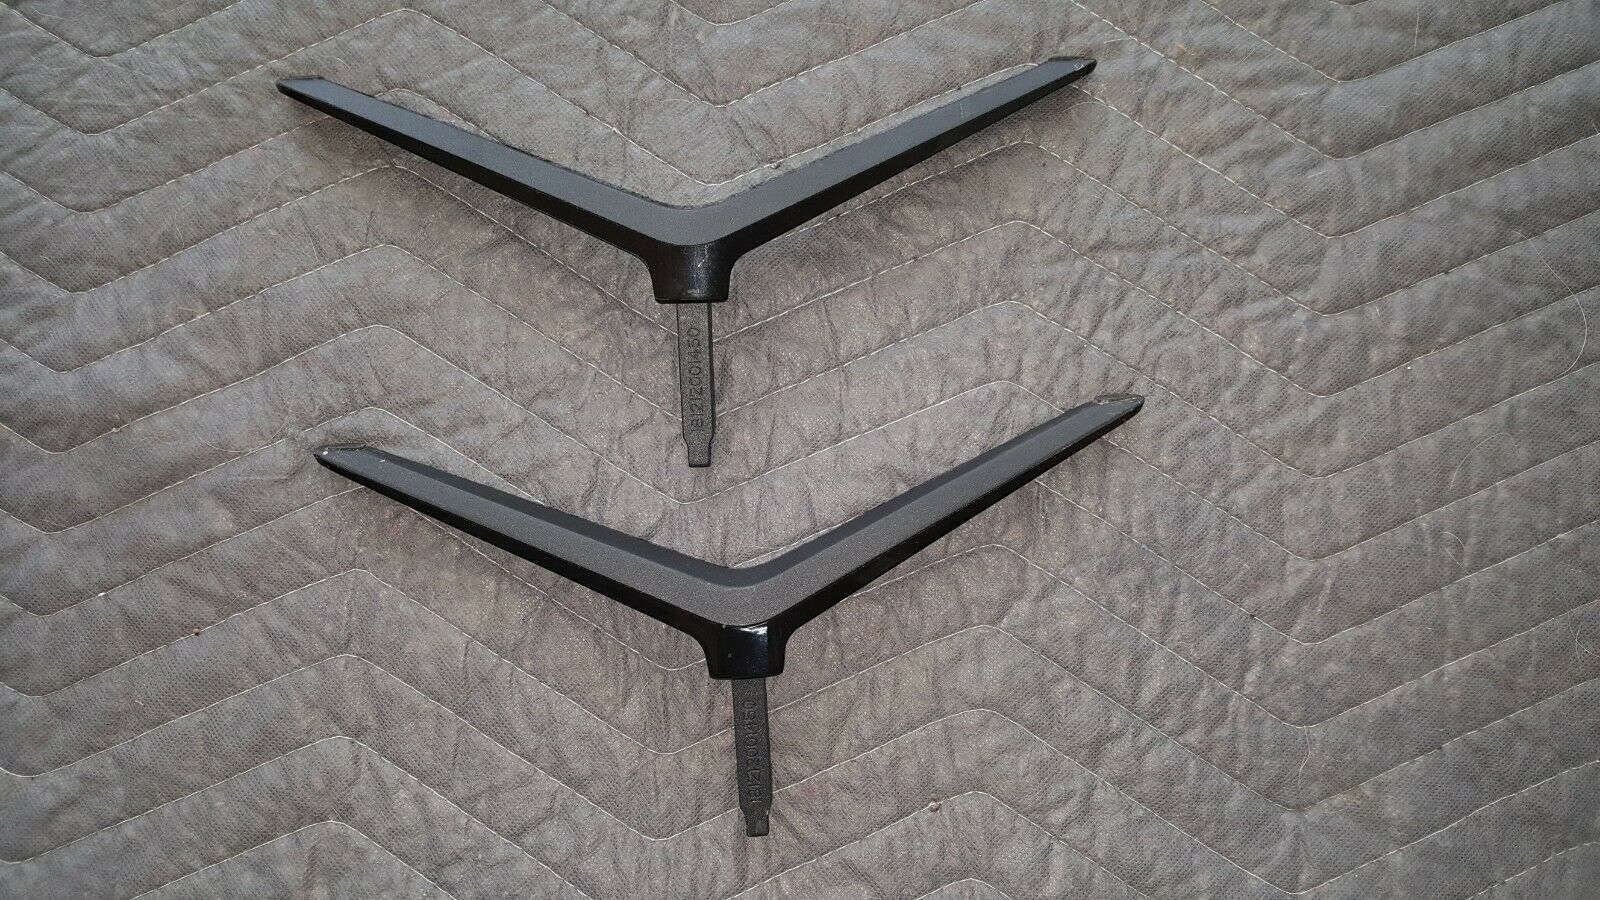 Primary image for D48-D0 Vizio 181212001450 Tv Stand Legs Left Right